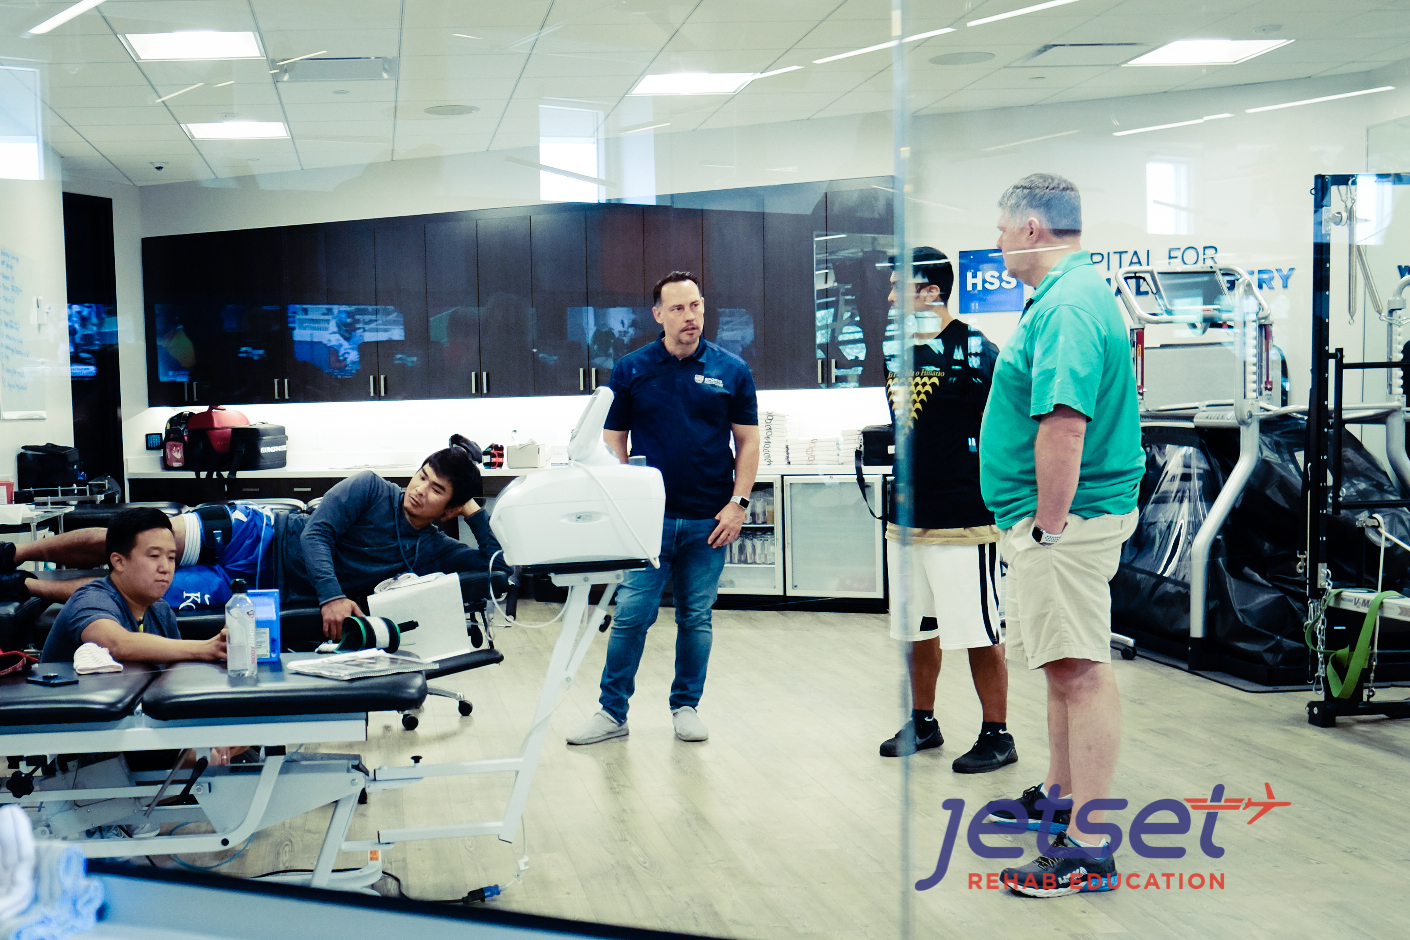 We keep our classes small at Jetset Rehab Education. This way the instructor is readily available and there are enough units for everyone to practice with multiple times.